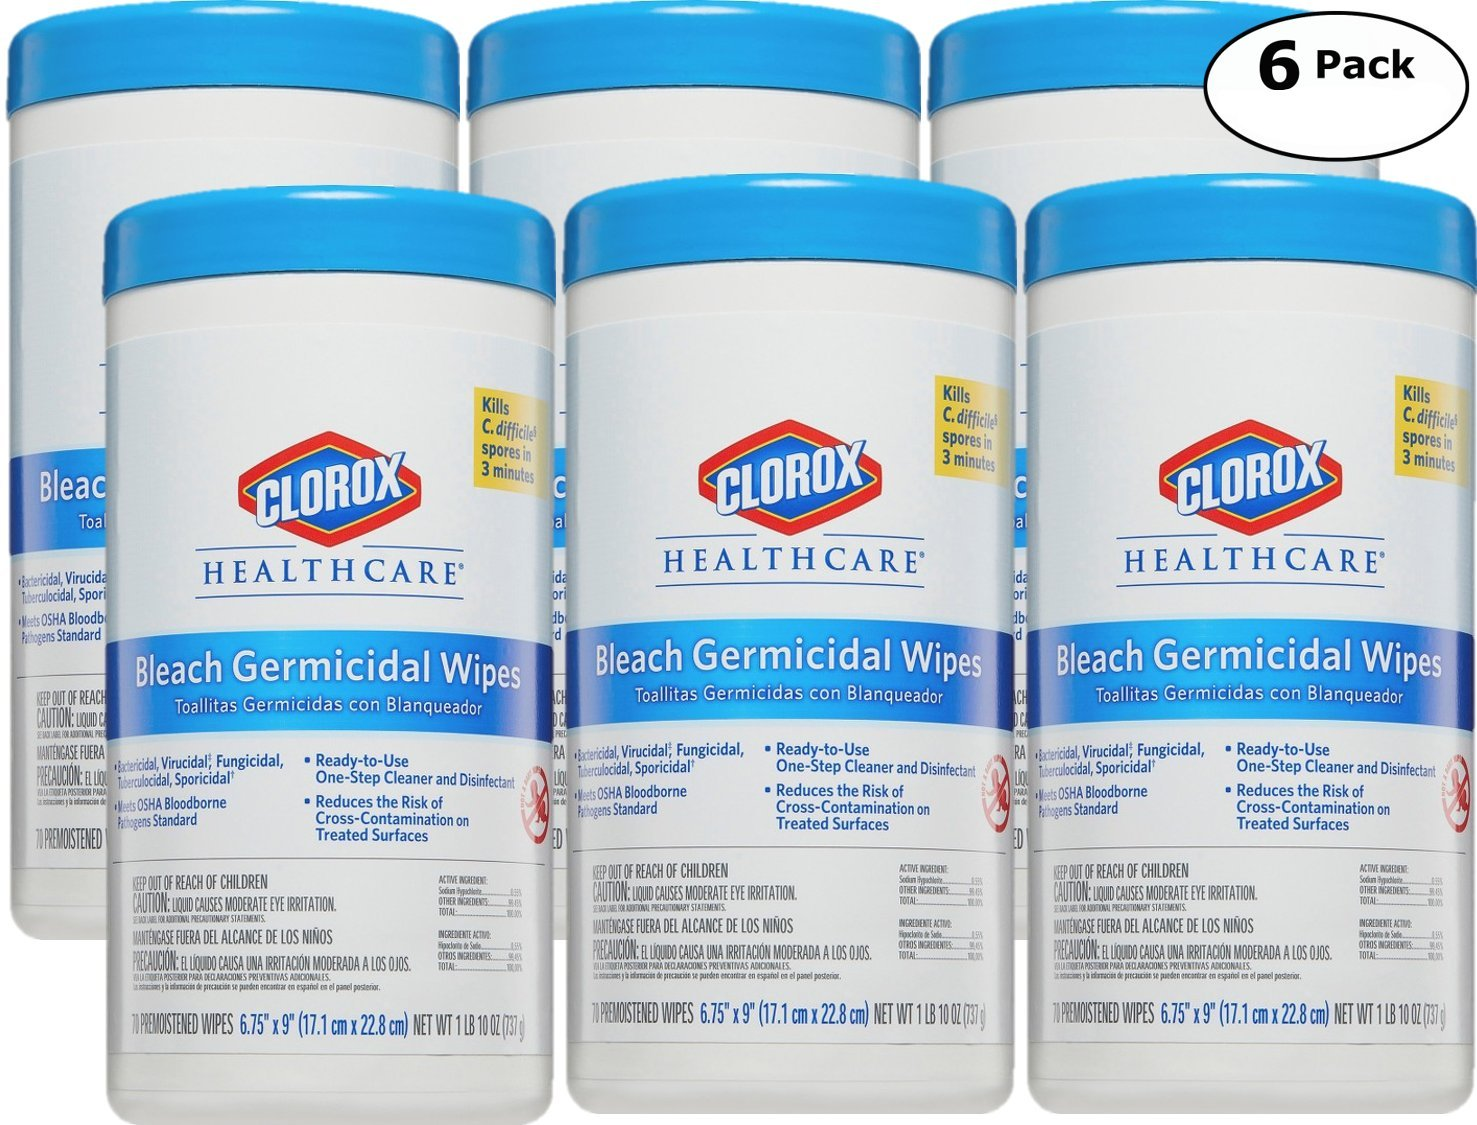 Clorox Healthcare, Professional Cleaner & Disinfectant Bleach Wipes - 70 Count x 6 Pack - Total 420 Premoistened Wipes